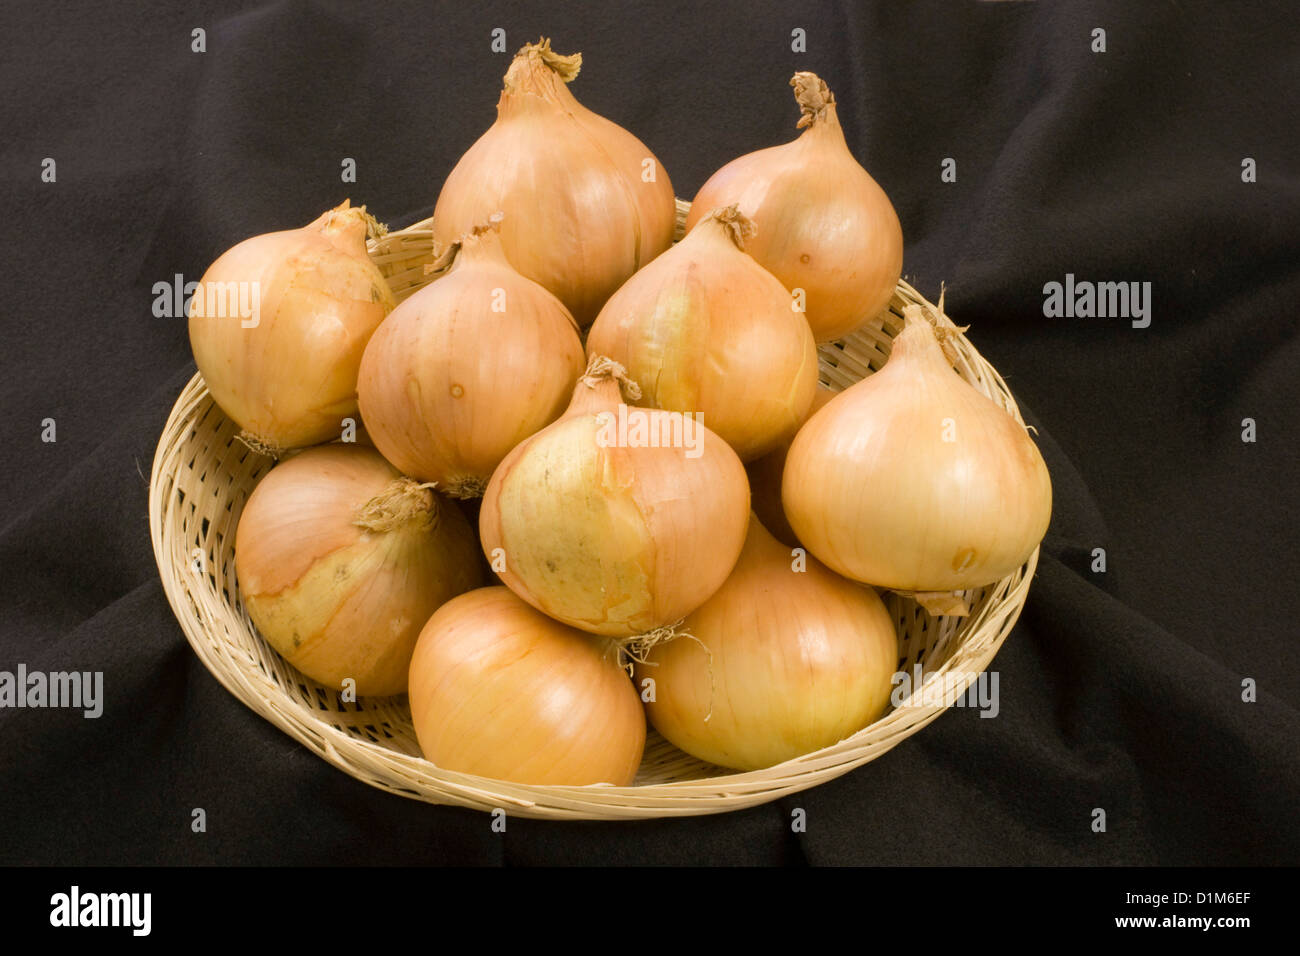 Basket of Onions Stock Photo